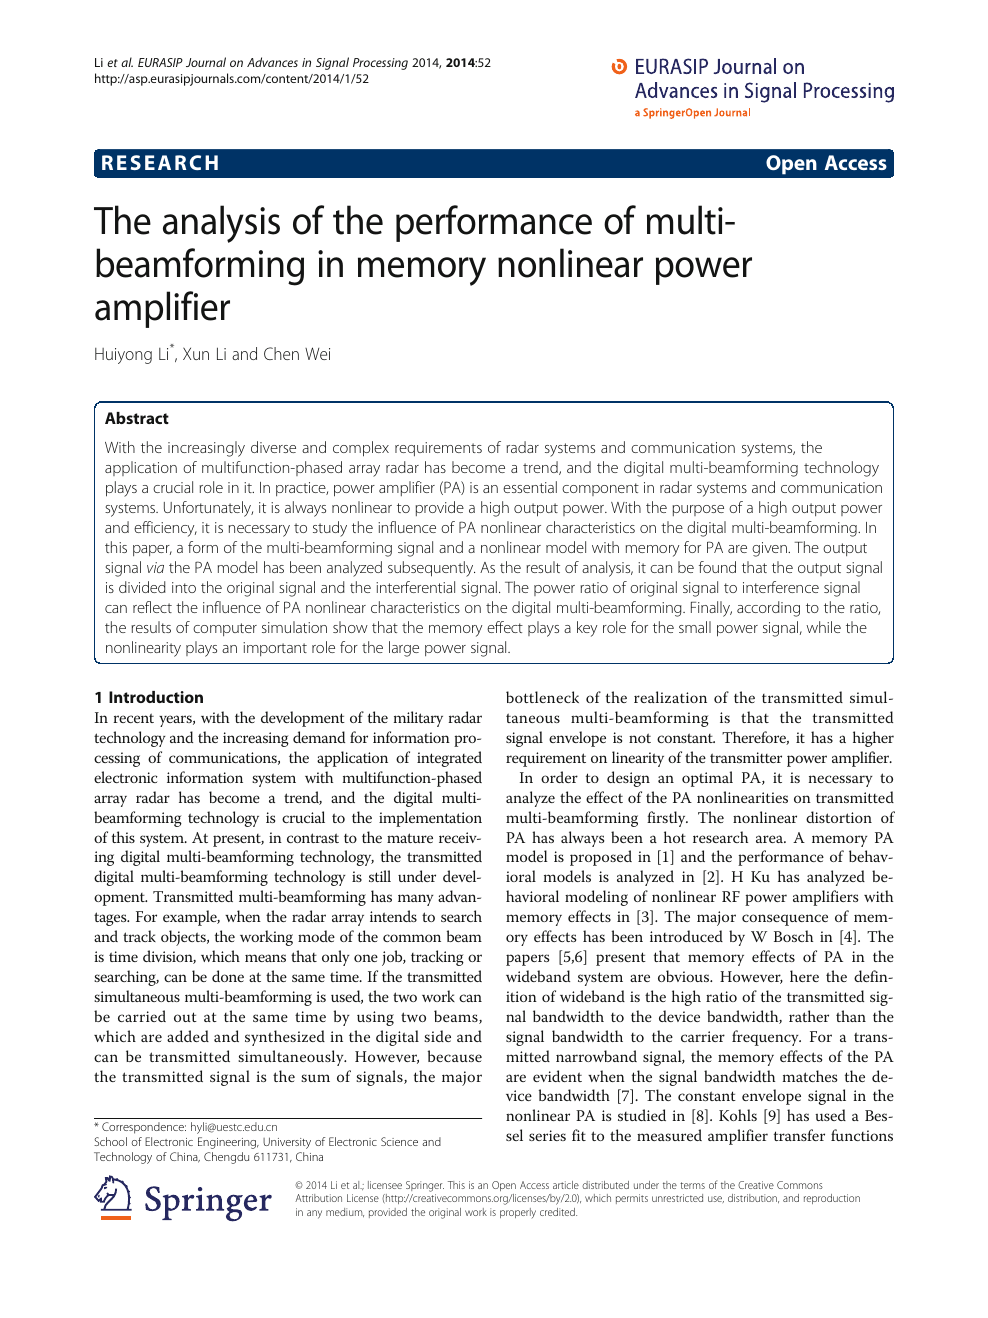 The analysis of the performance of multi-beamforming in memory